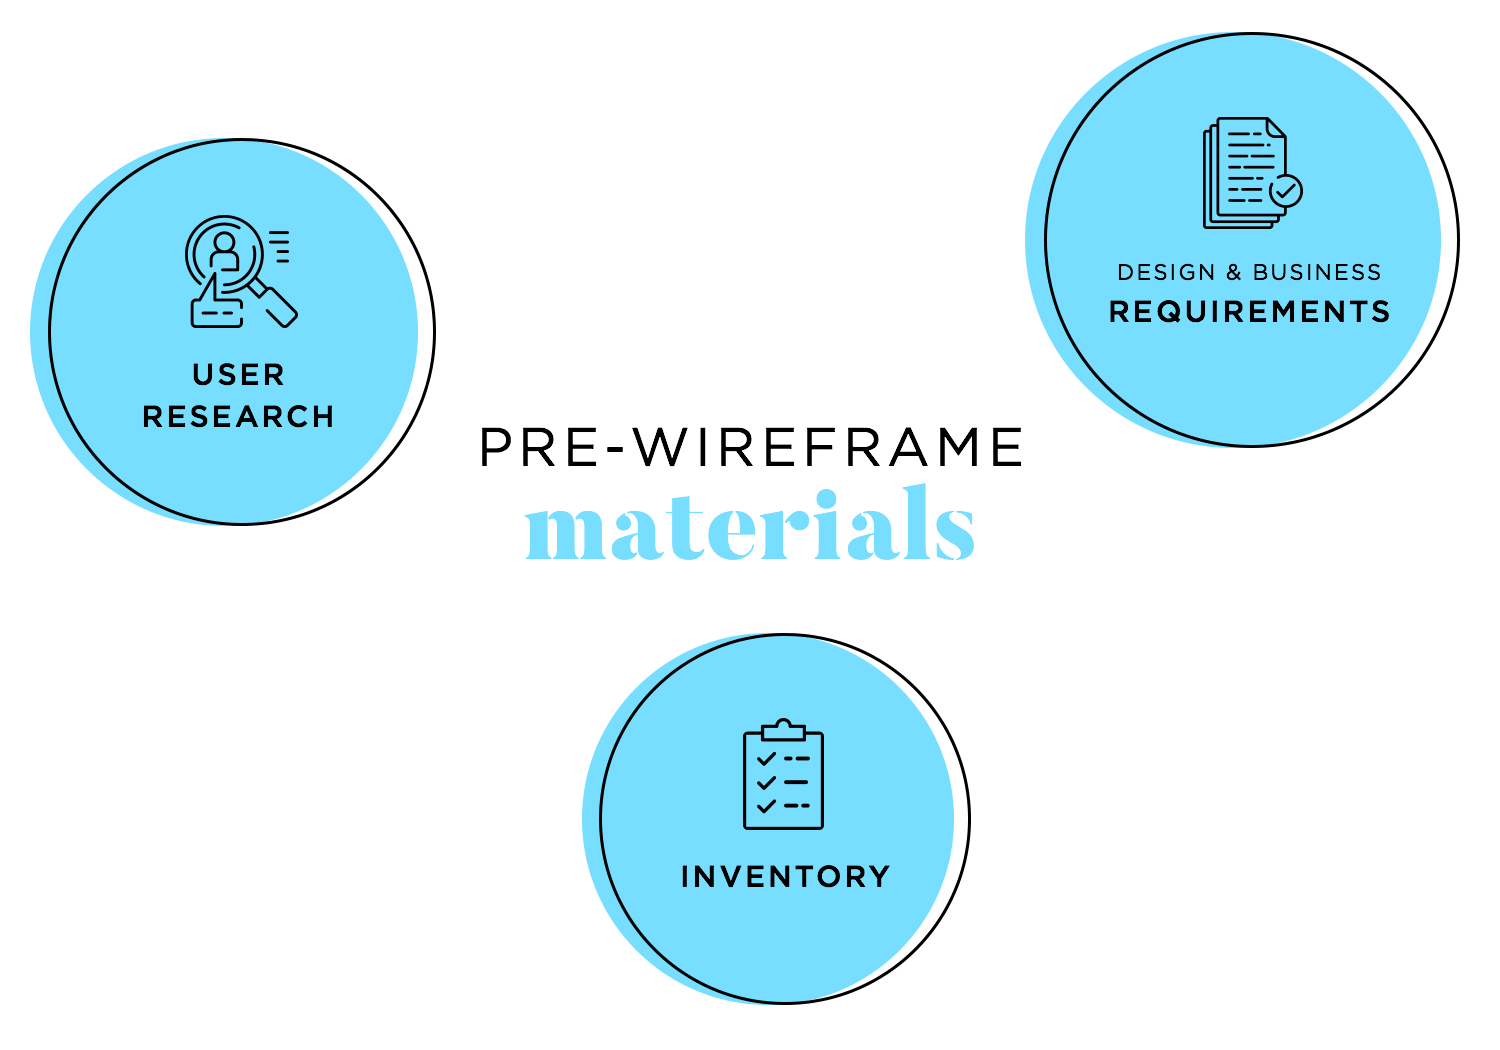 materials designers need before wireframing apps